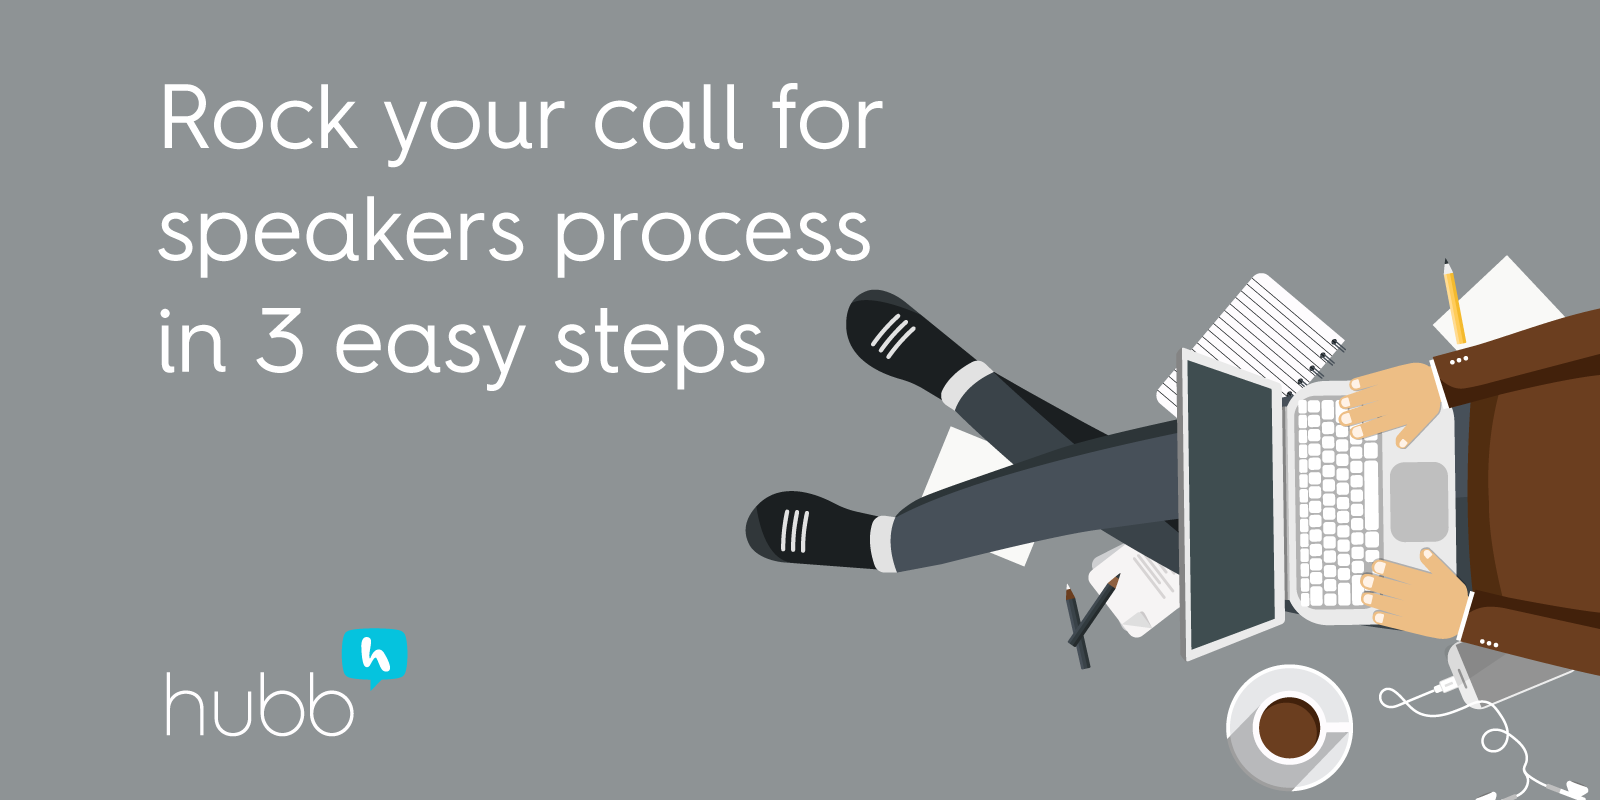 Rock your call for speakers process in 3 easy steps